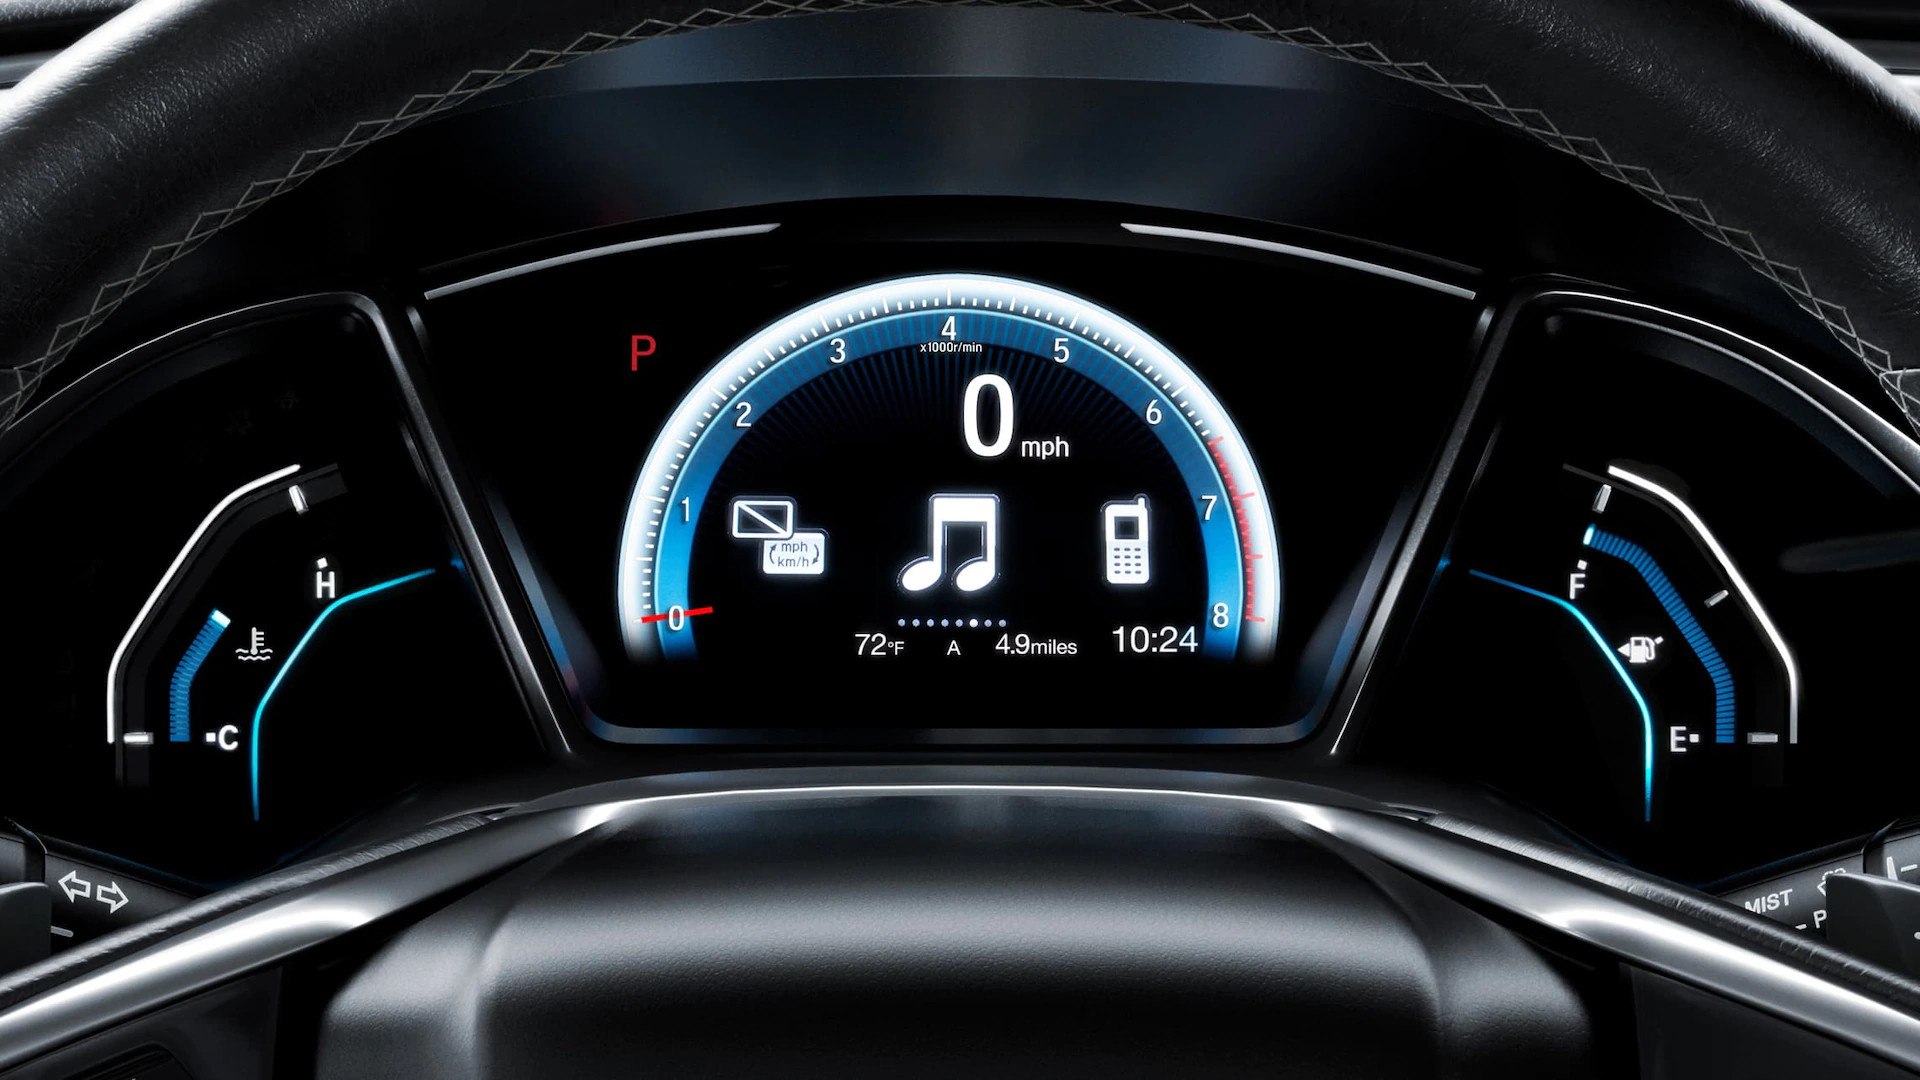 Instrument Cluster in the 2020 Civic